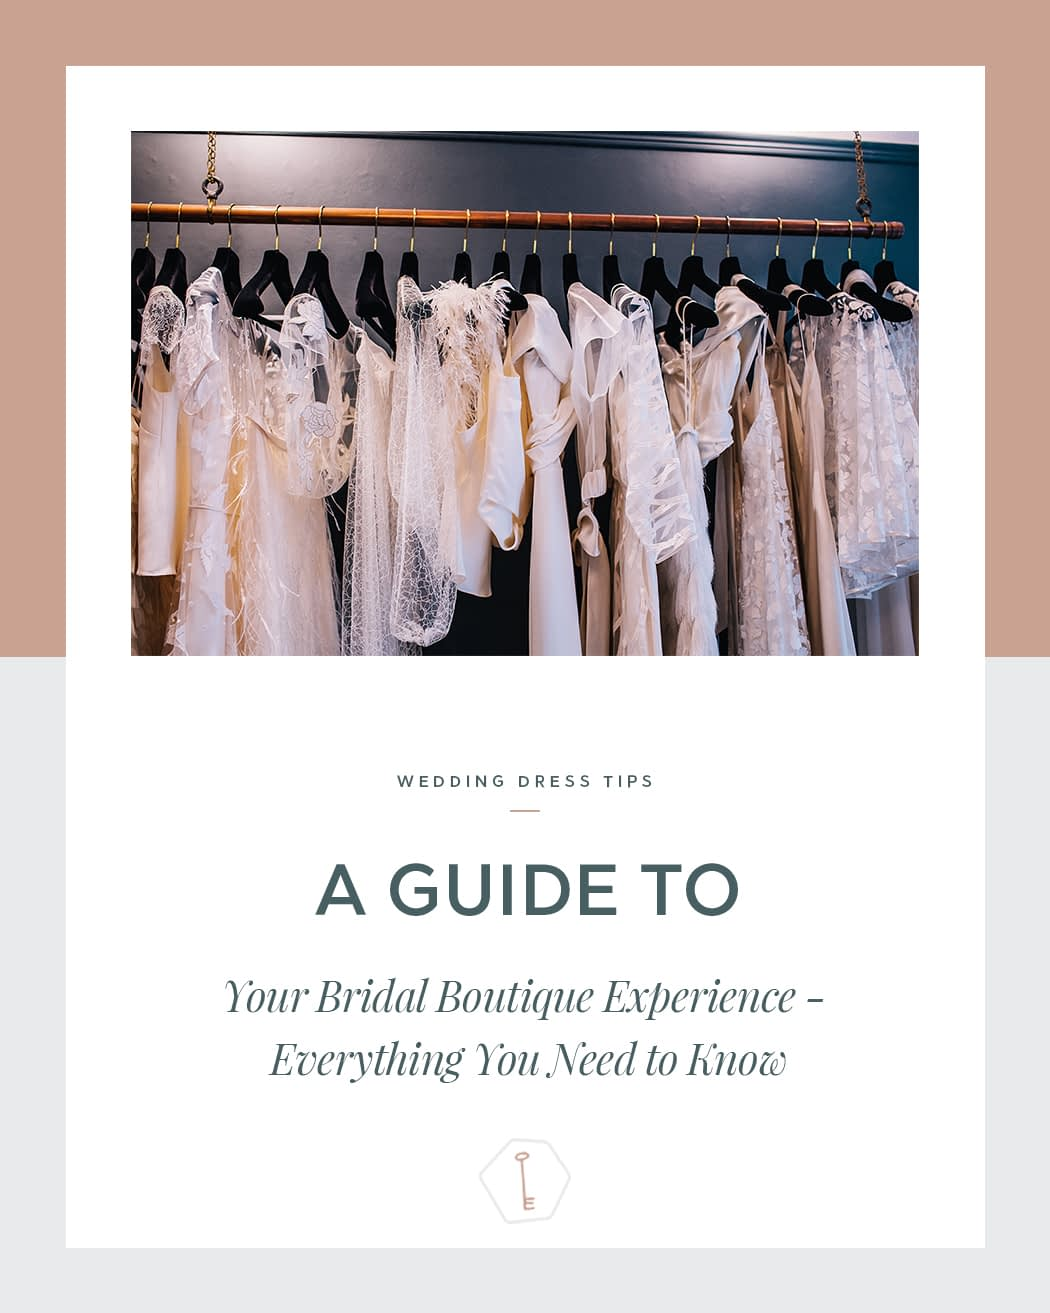 Your Bridal Boutique Experience – Everything You Need to Know